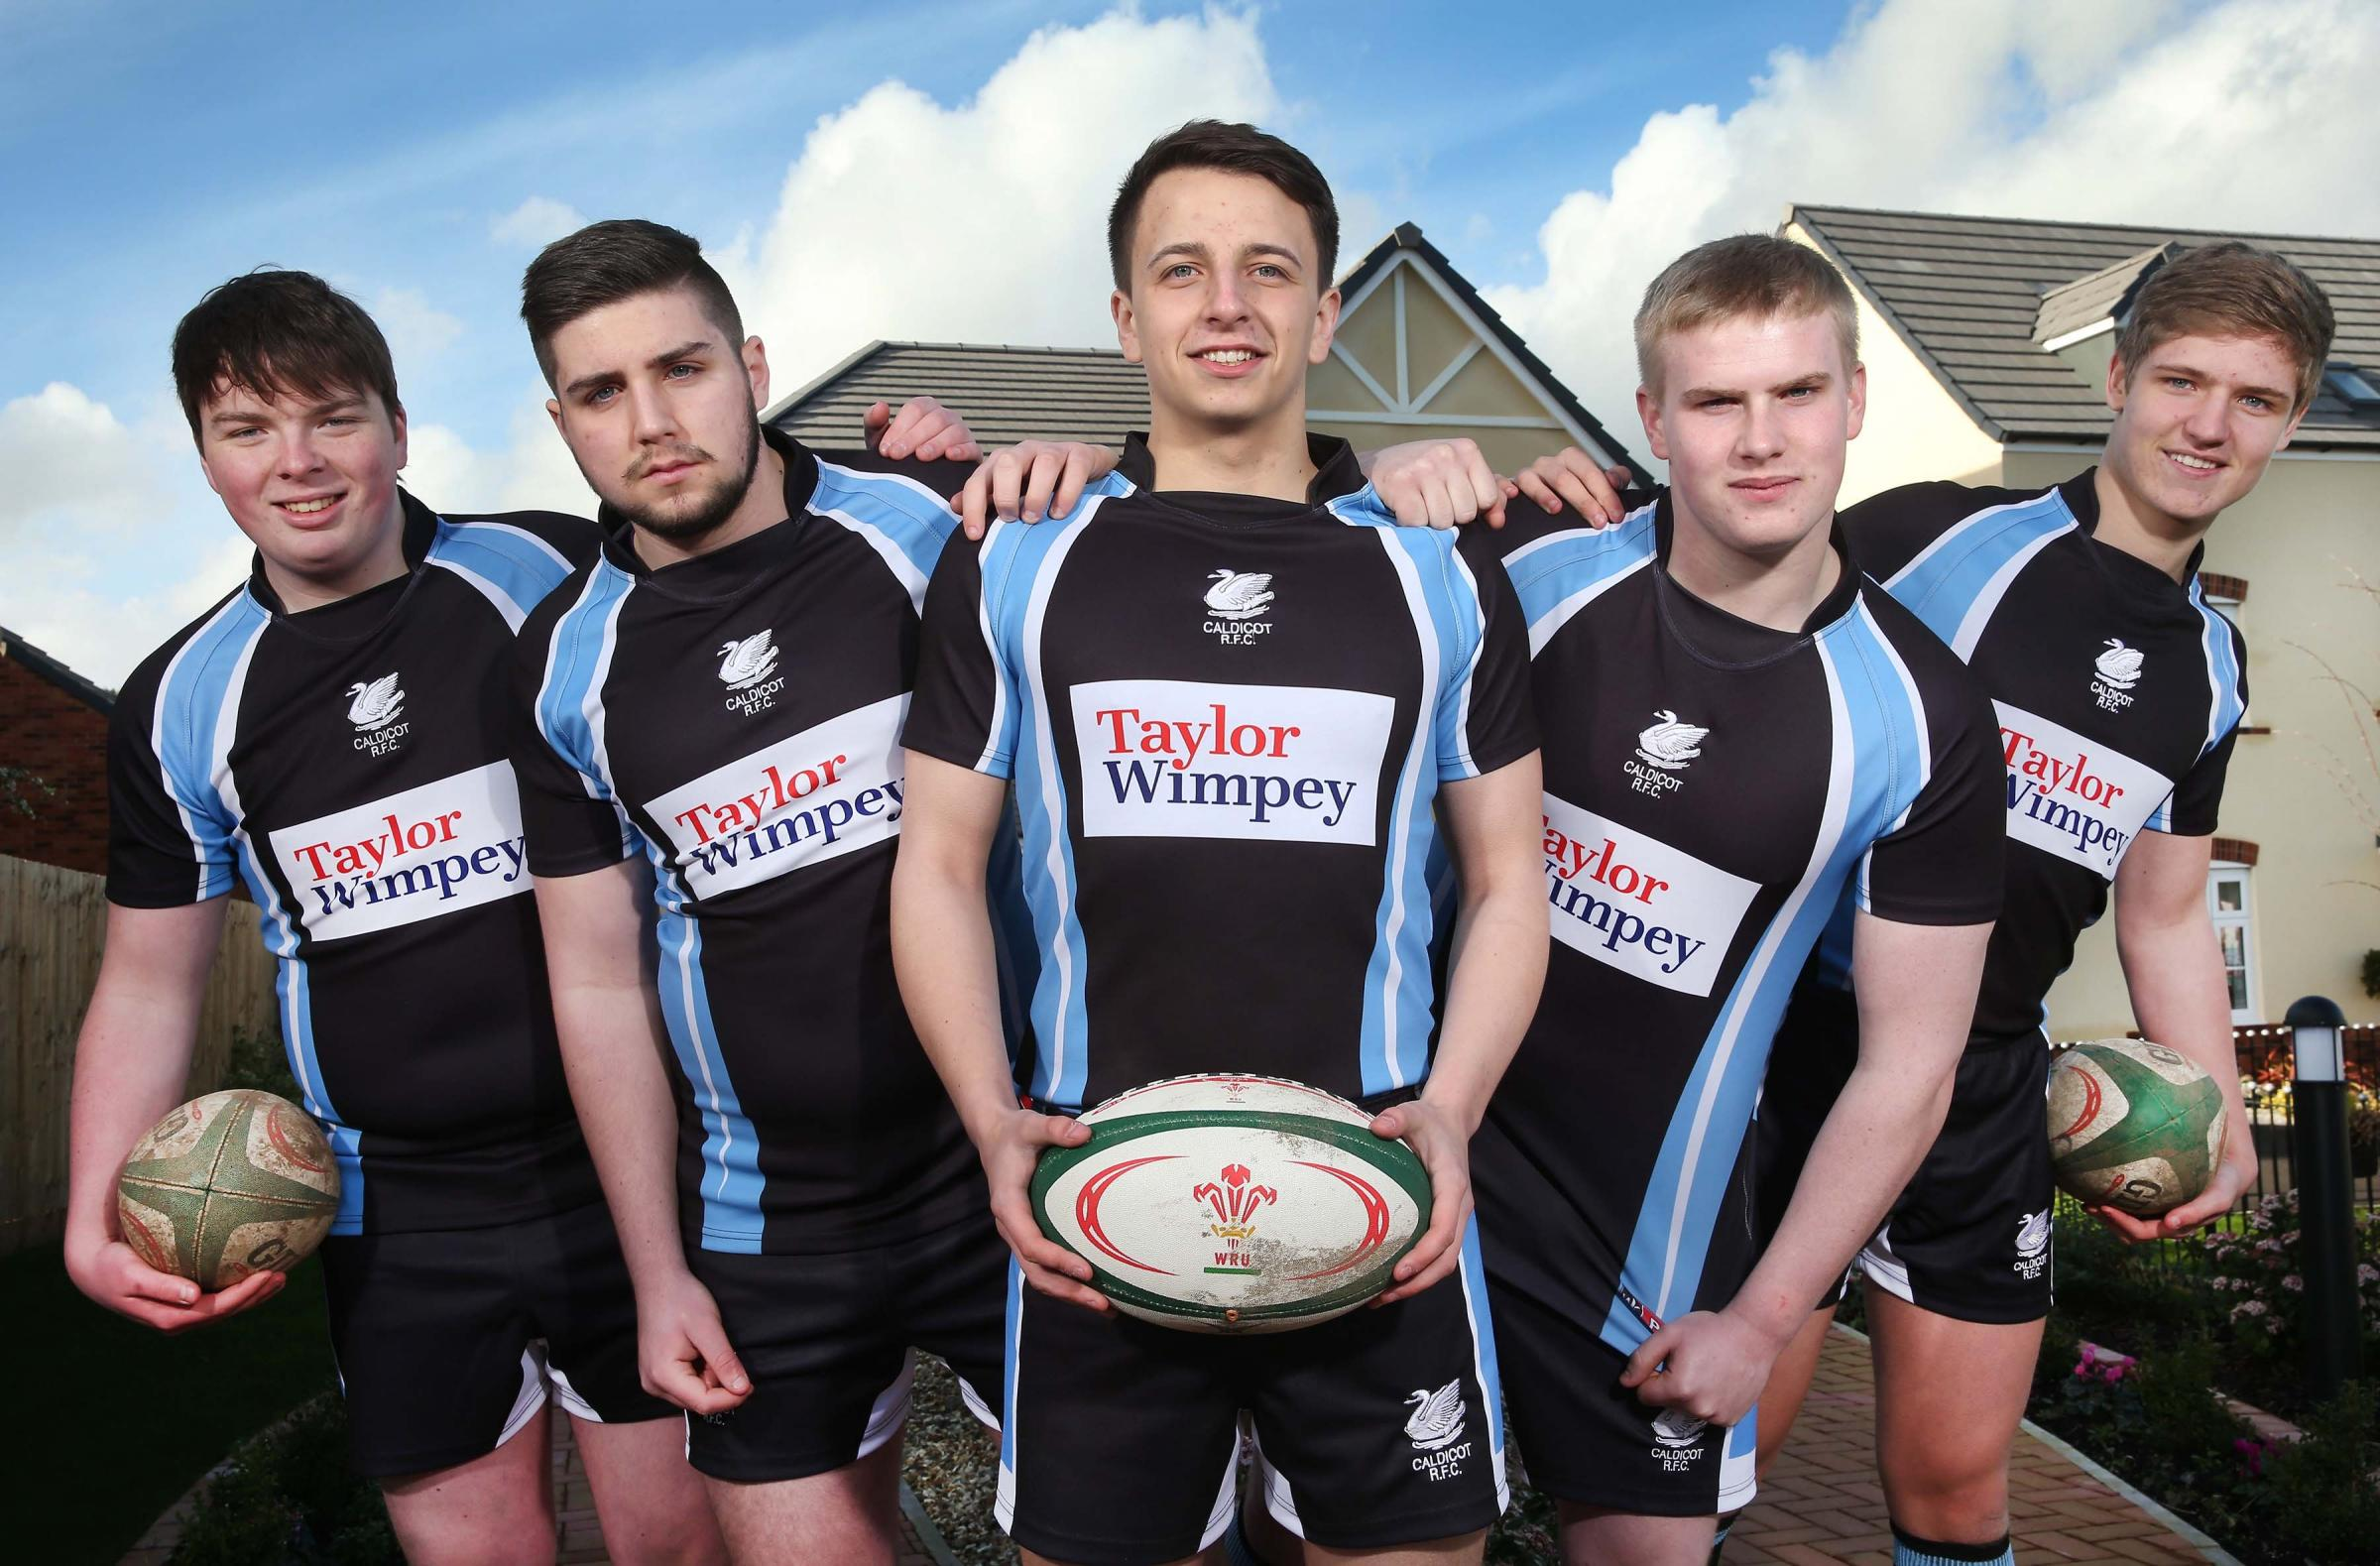 Pics (C) Huw John Photography, Cardiff. MANDATORY BYLINE - HUW JOHNCaldicot Youth RFC players are in a new match kit this season thanks to a generous donation by leading housebuilder Taylor Wimpey. (On image 1 players are l-r: Shane Stephens, Jac Richards